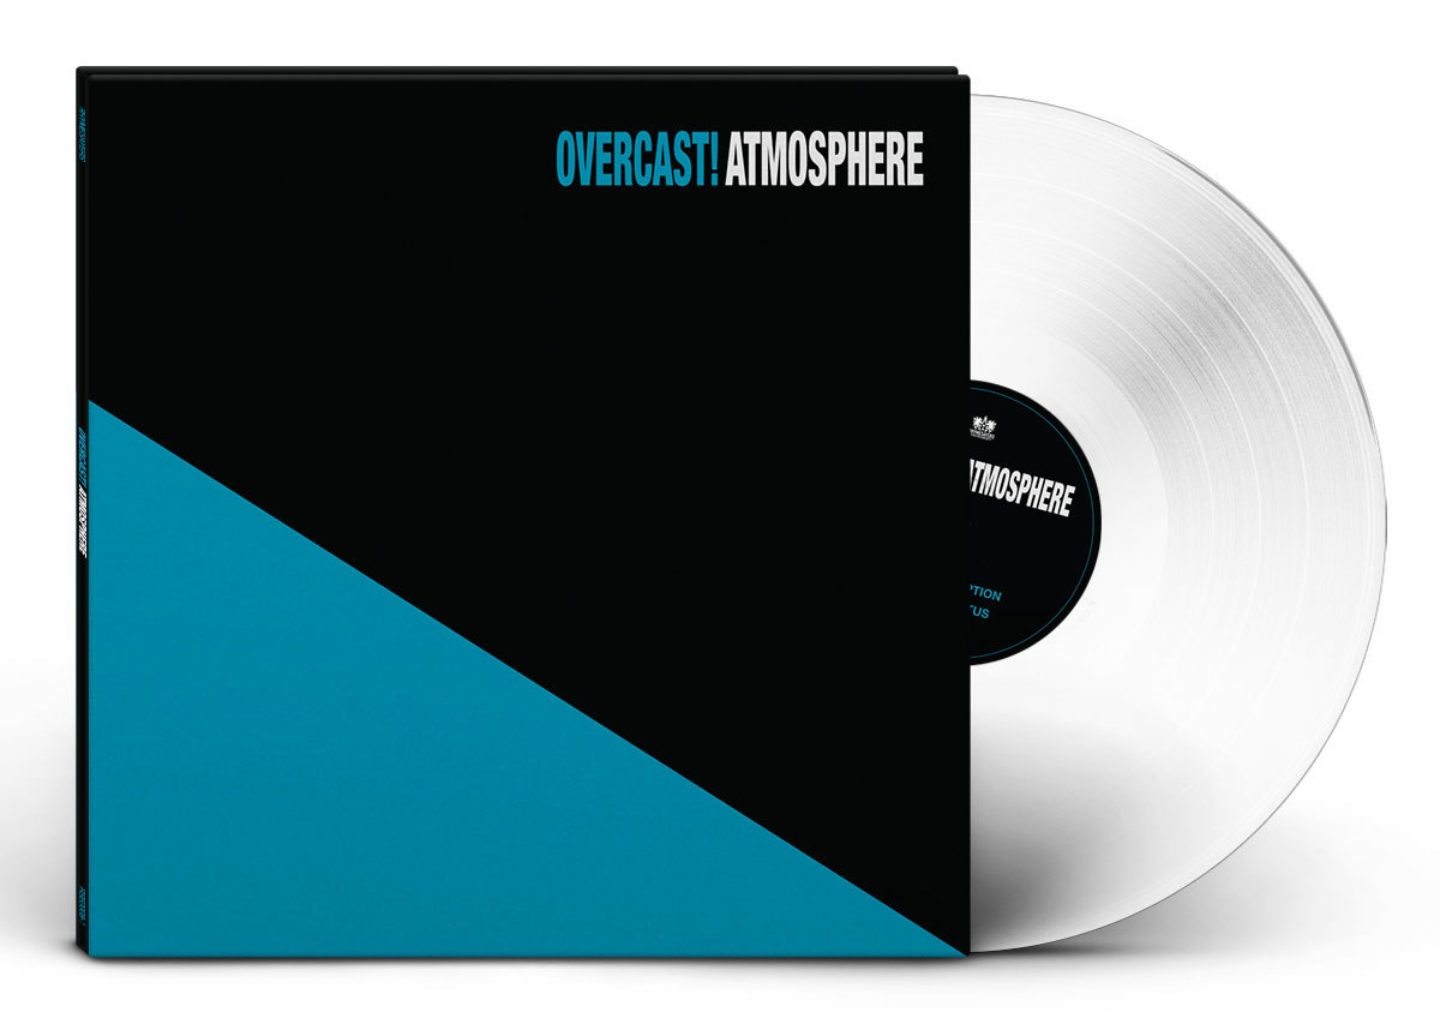 Atmosphere Vinyl Resized